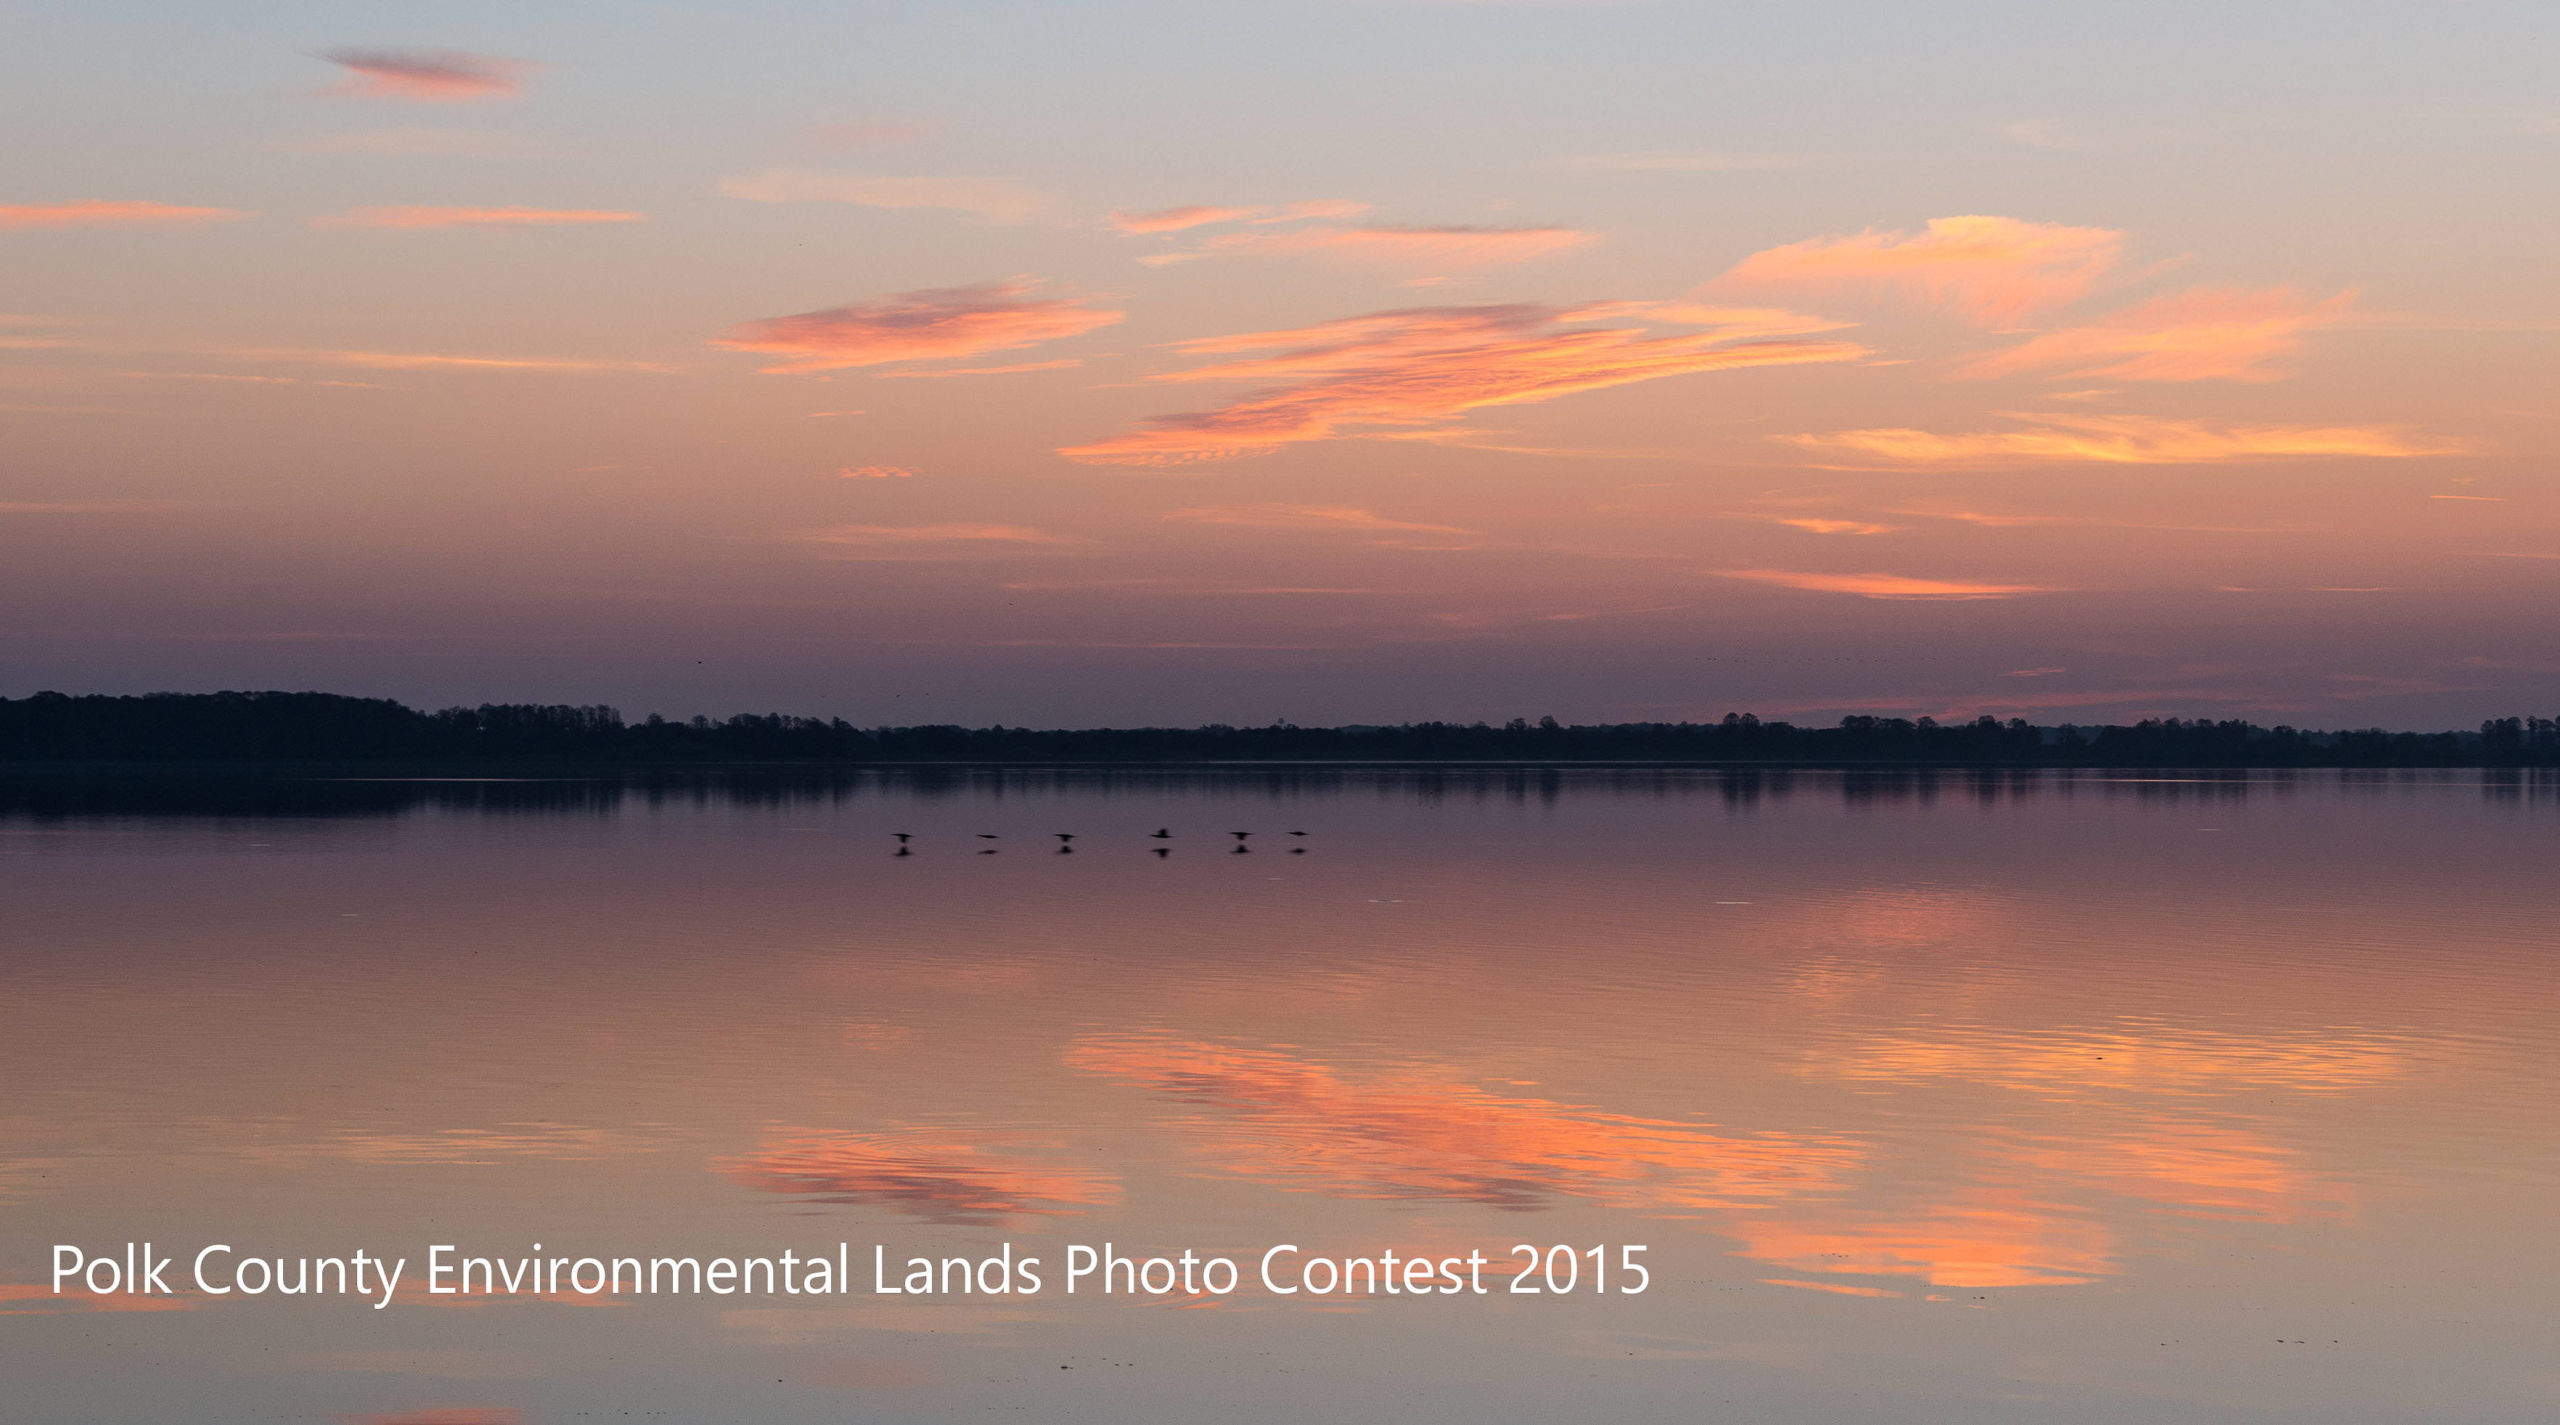 """Featured image for """"Polk County Environmental Lands Photo Contest 2015"""""""